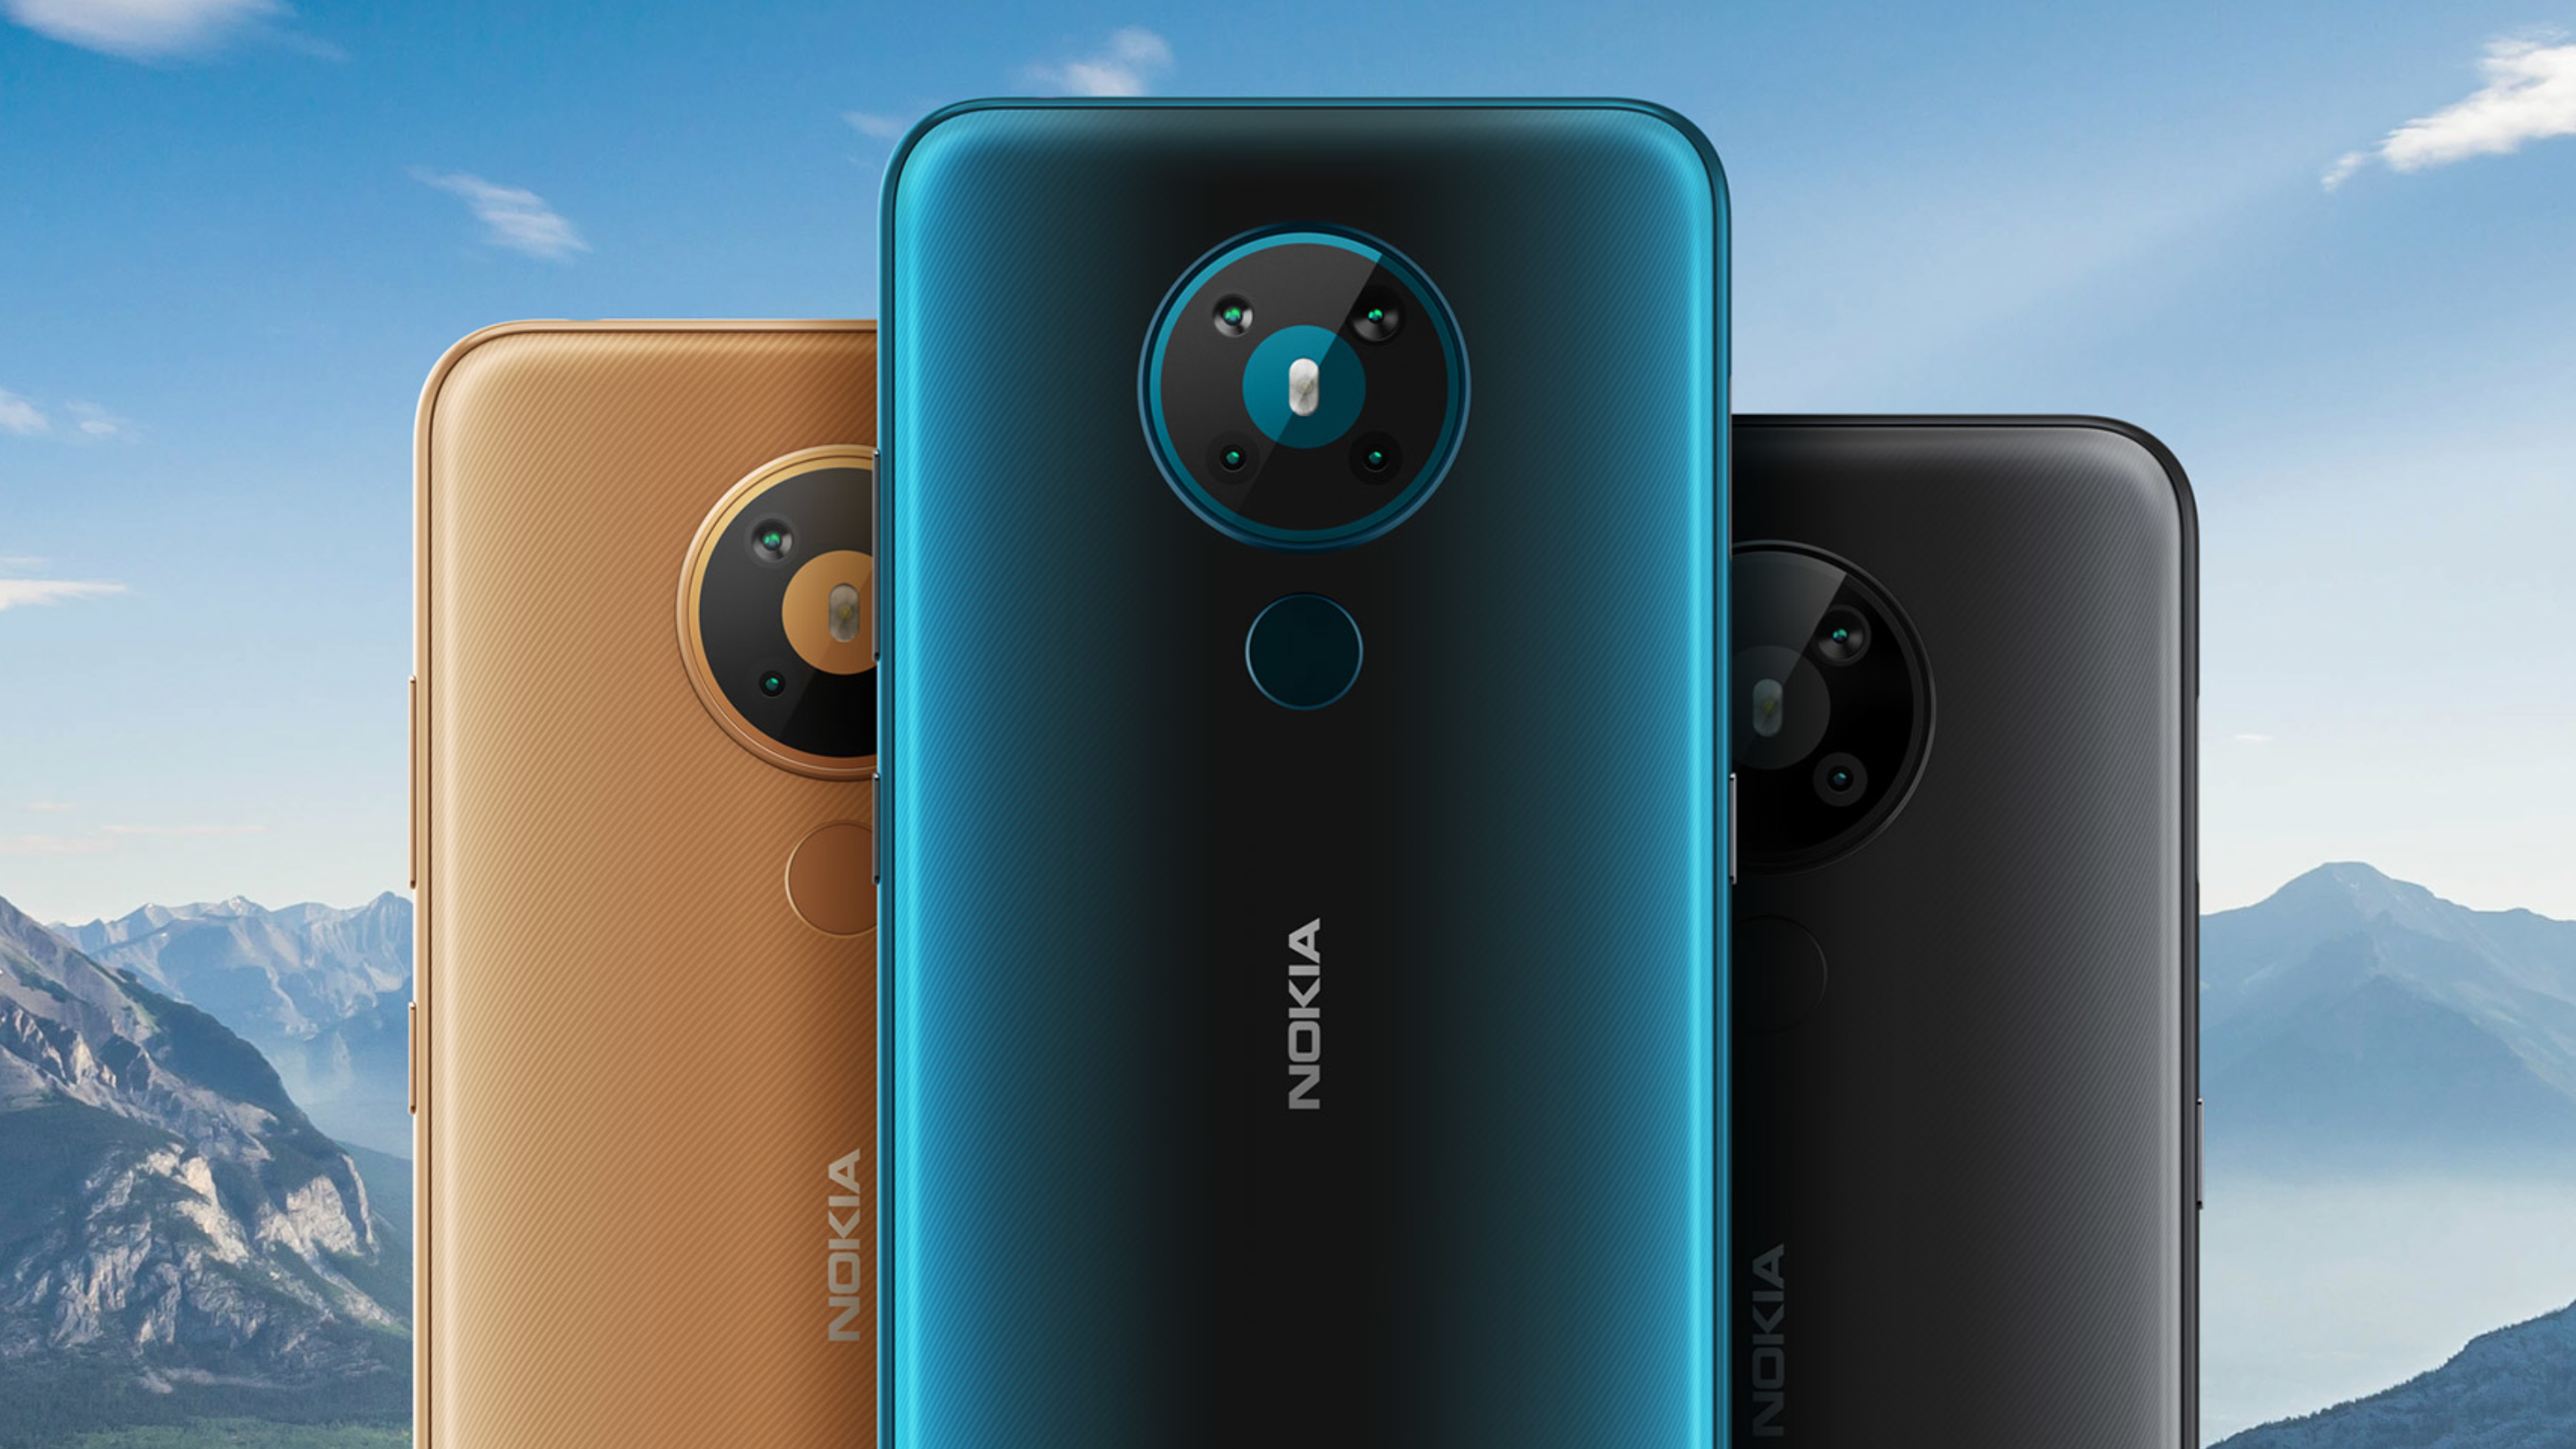 Nokia 8 3 5g Brings 5g To The Masses With 64mp Main Camera And 4k Video Digital Camera World